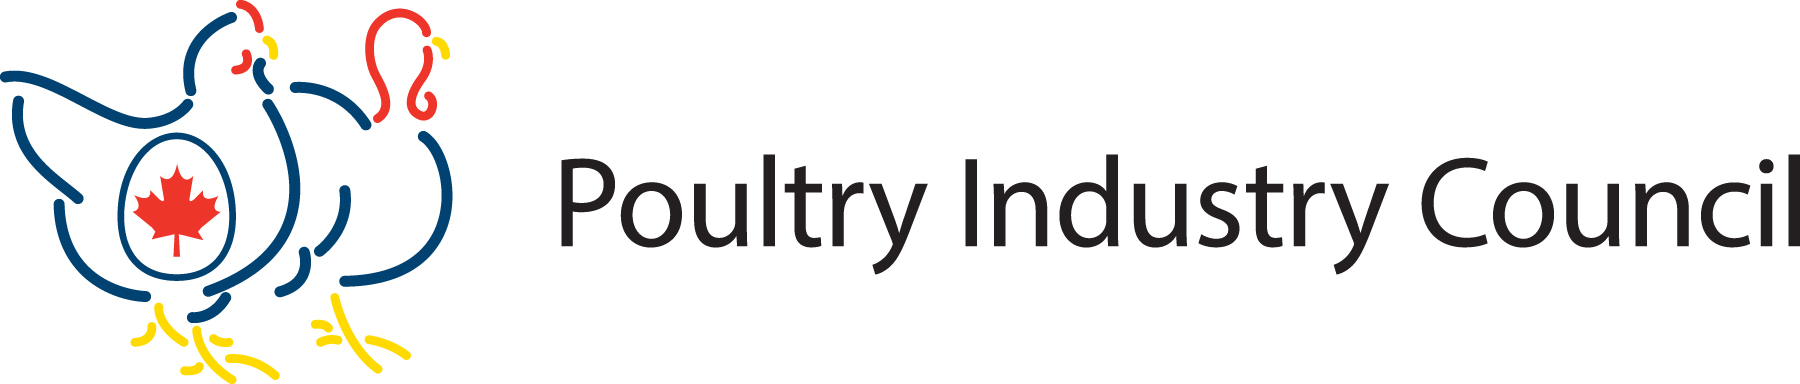 Poultry Industry Council Logo